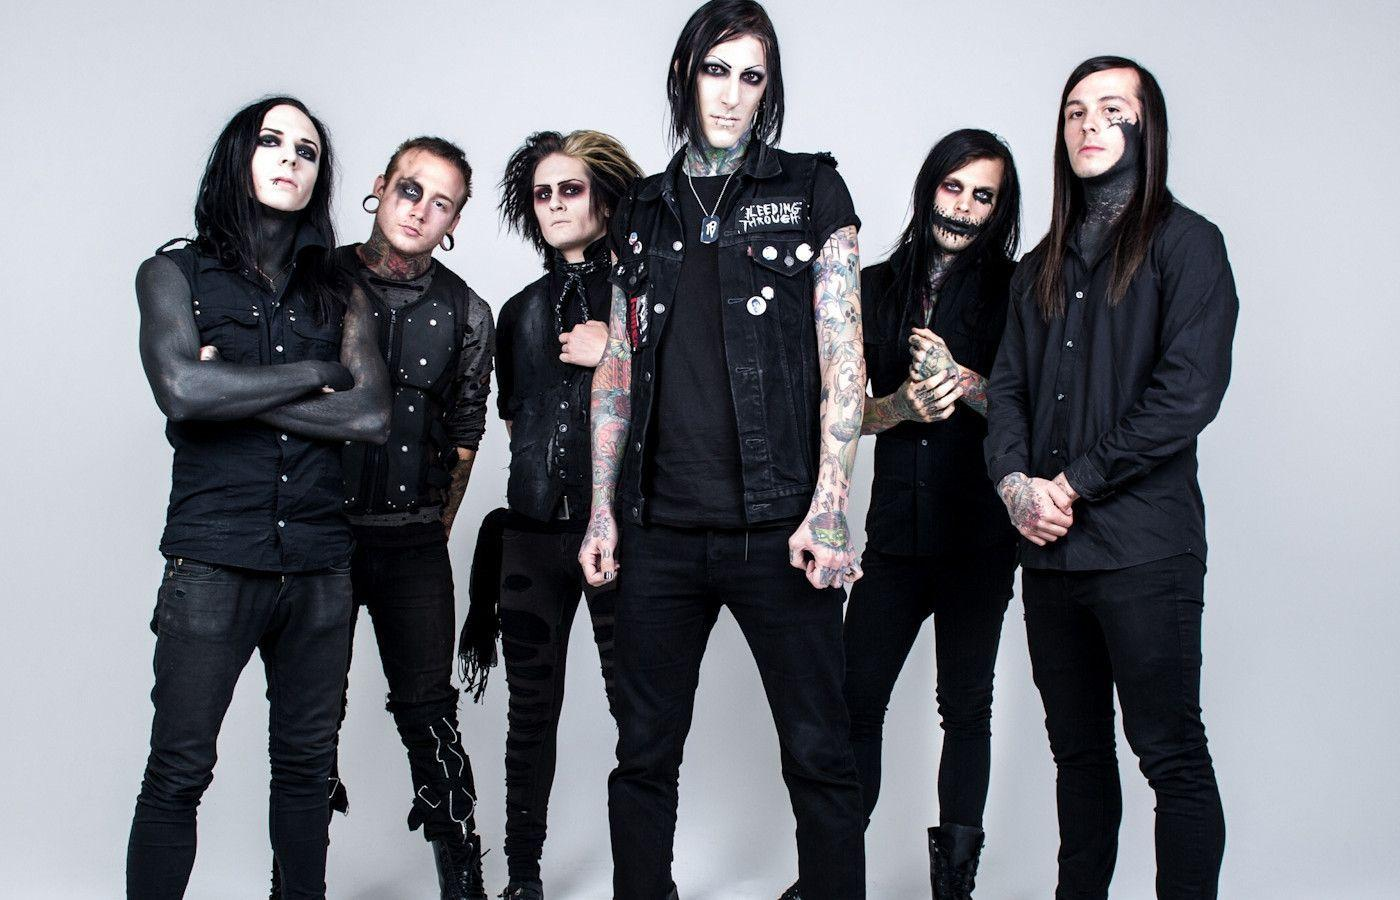 Falling In Reverse Wallpaper 2016 Motionless In White Wallpapers Wallpaper Cave